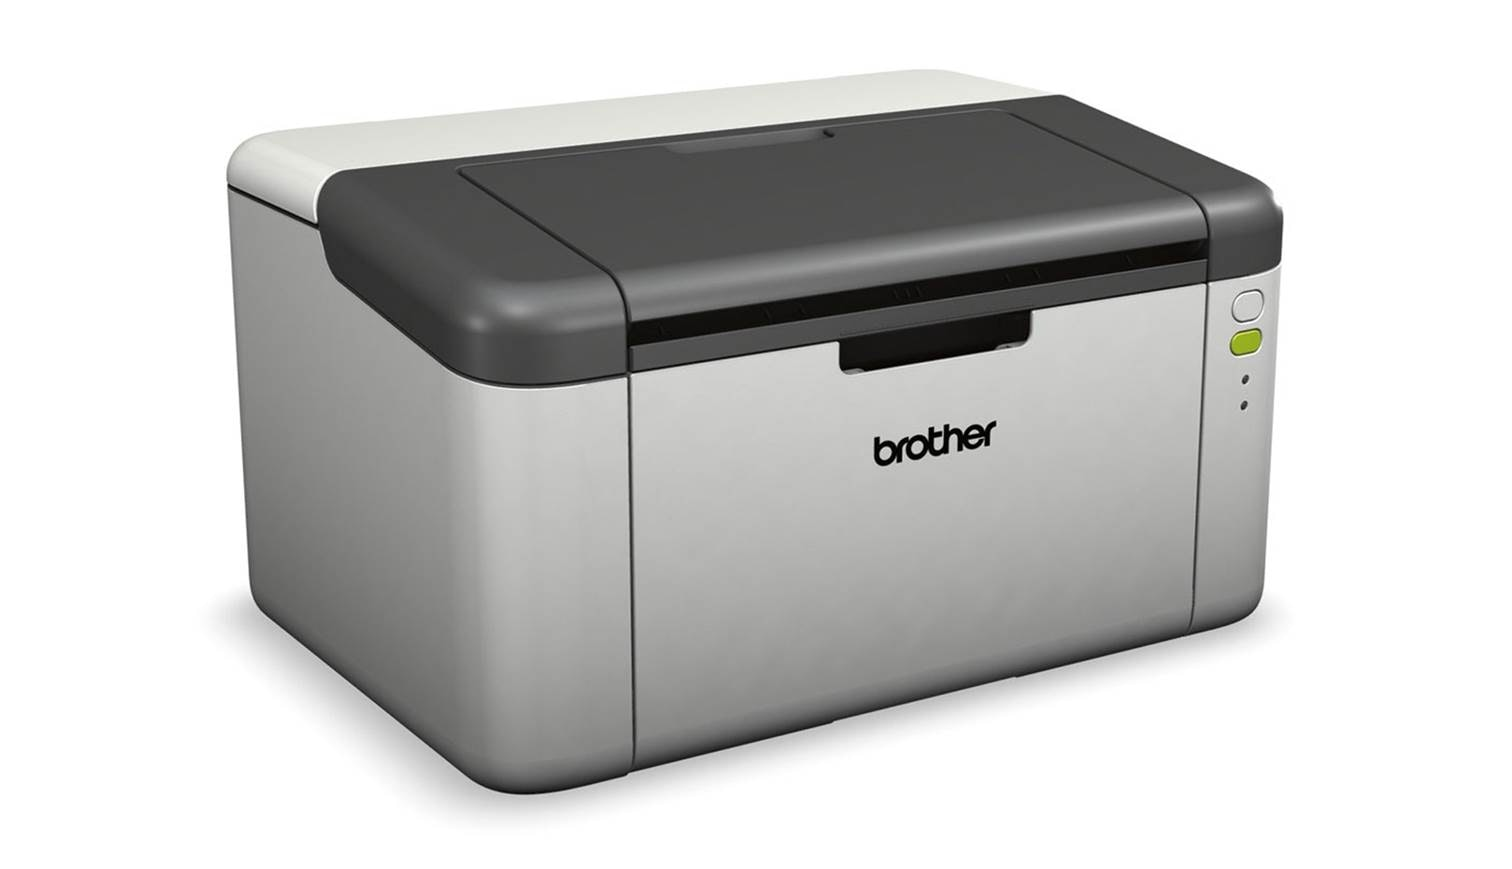 BROTHER HL-1210W PRINTER DRIVERS FOR WINDOWS